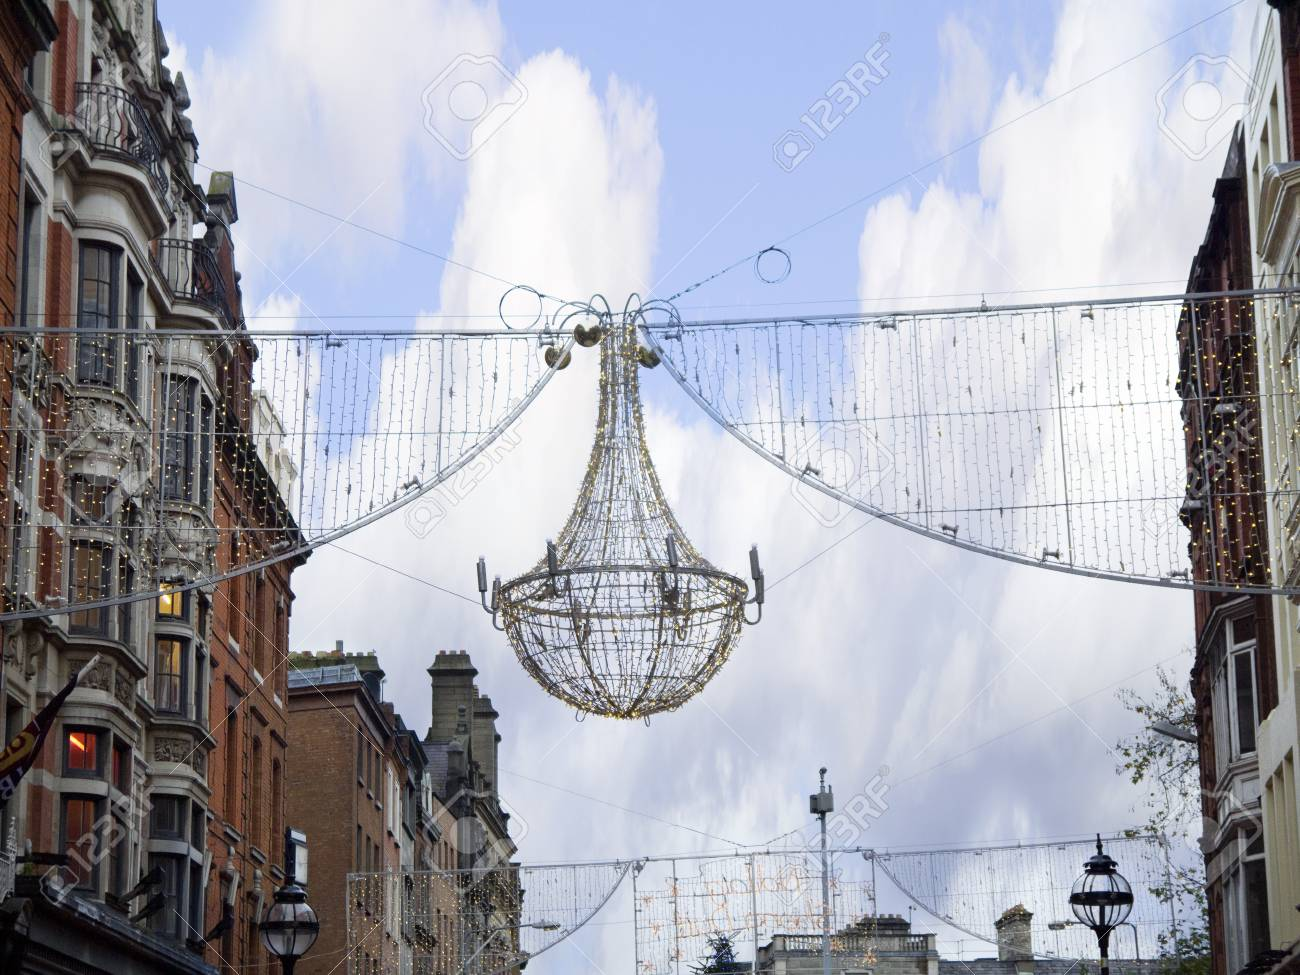 Christmas Decorations In Dublin City Ireland Stock Photo, Picture ...